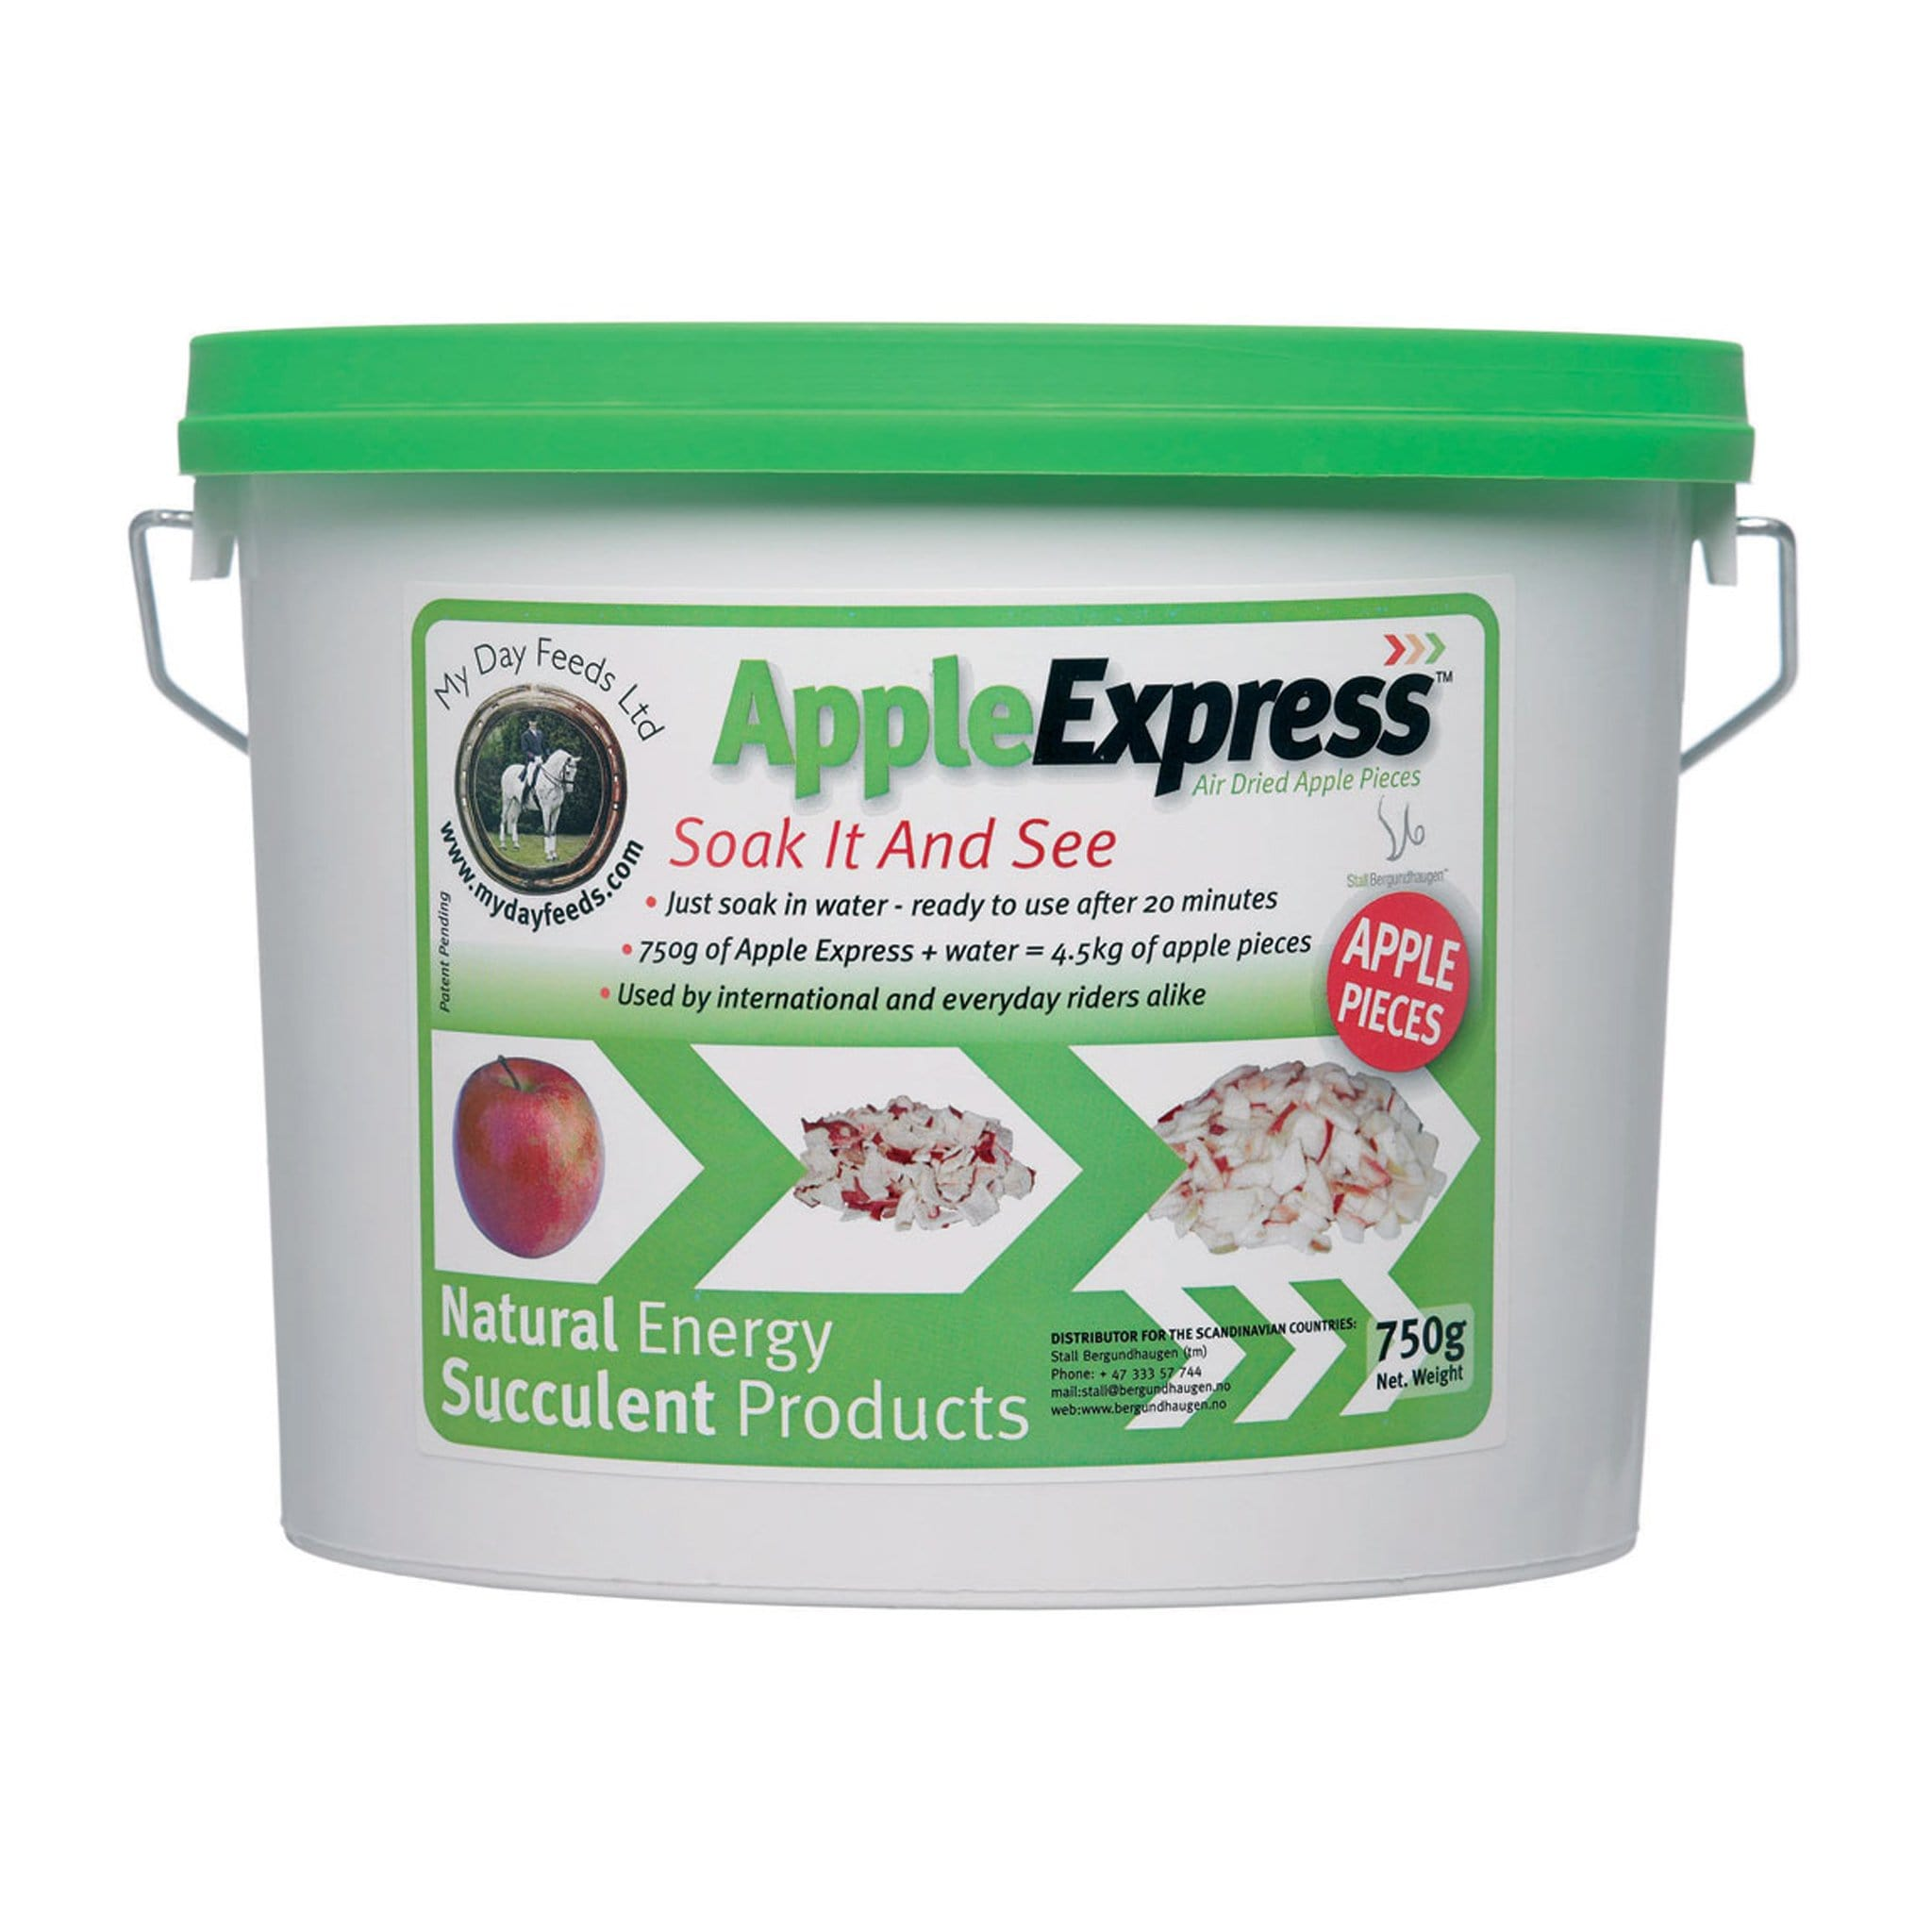 My Day Feeds Ltd Apple Express